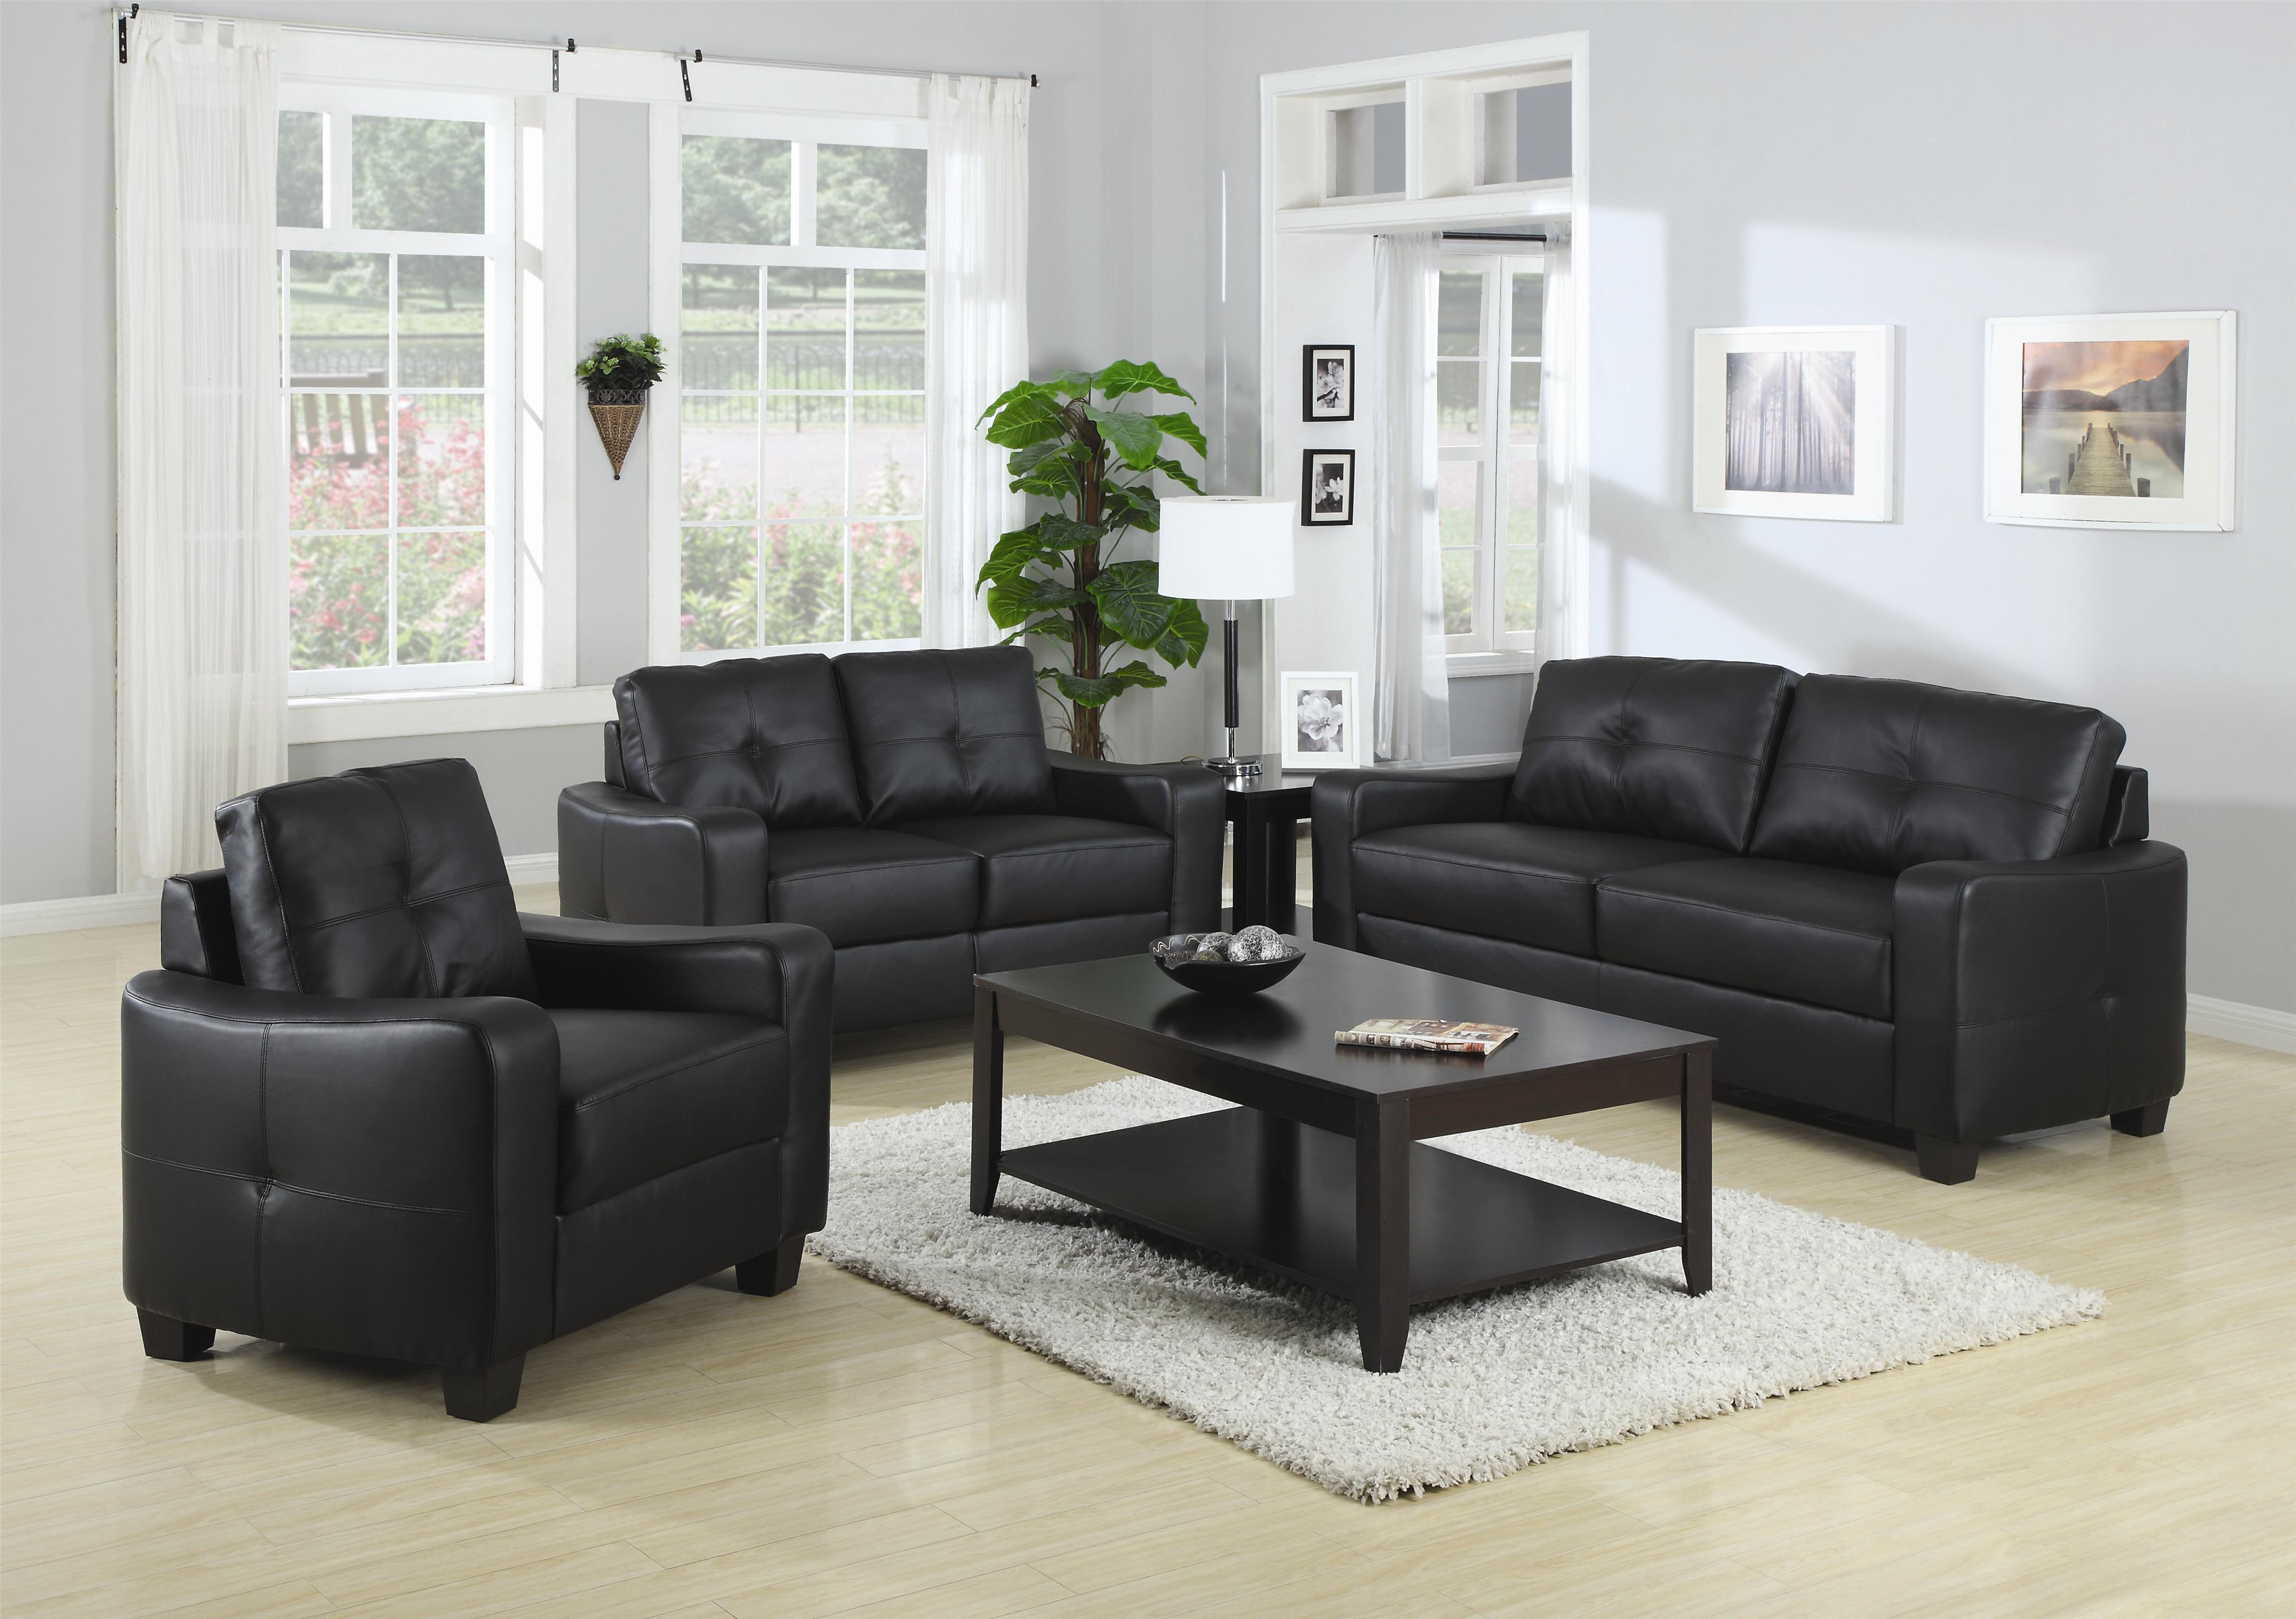 Coaster Jasmine  Stationary Living Room Group - Item Number: 50272 Living Room Group 1